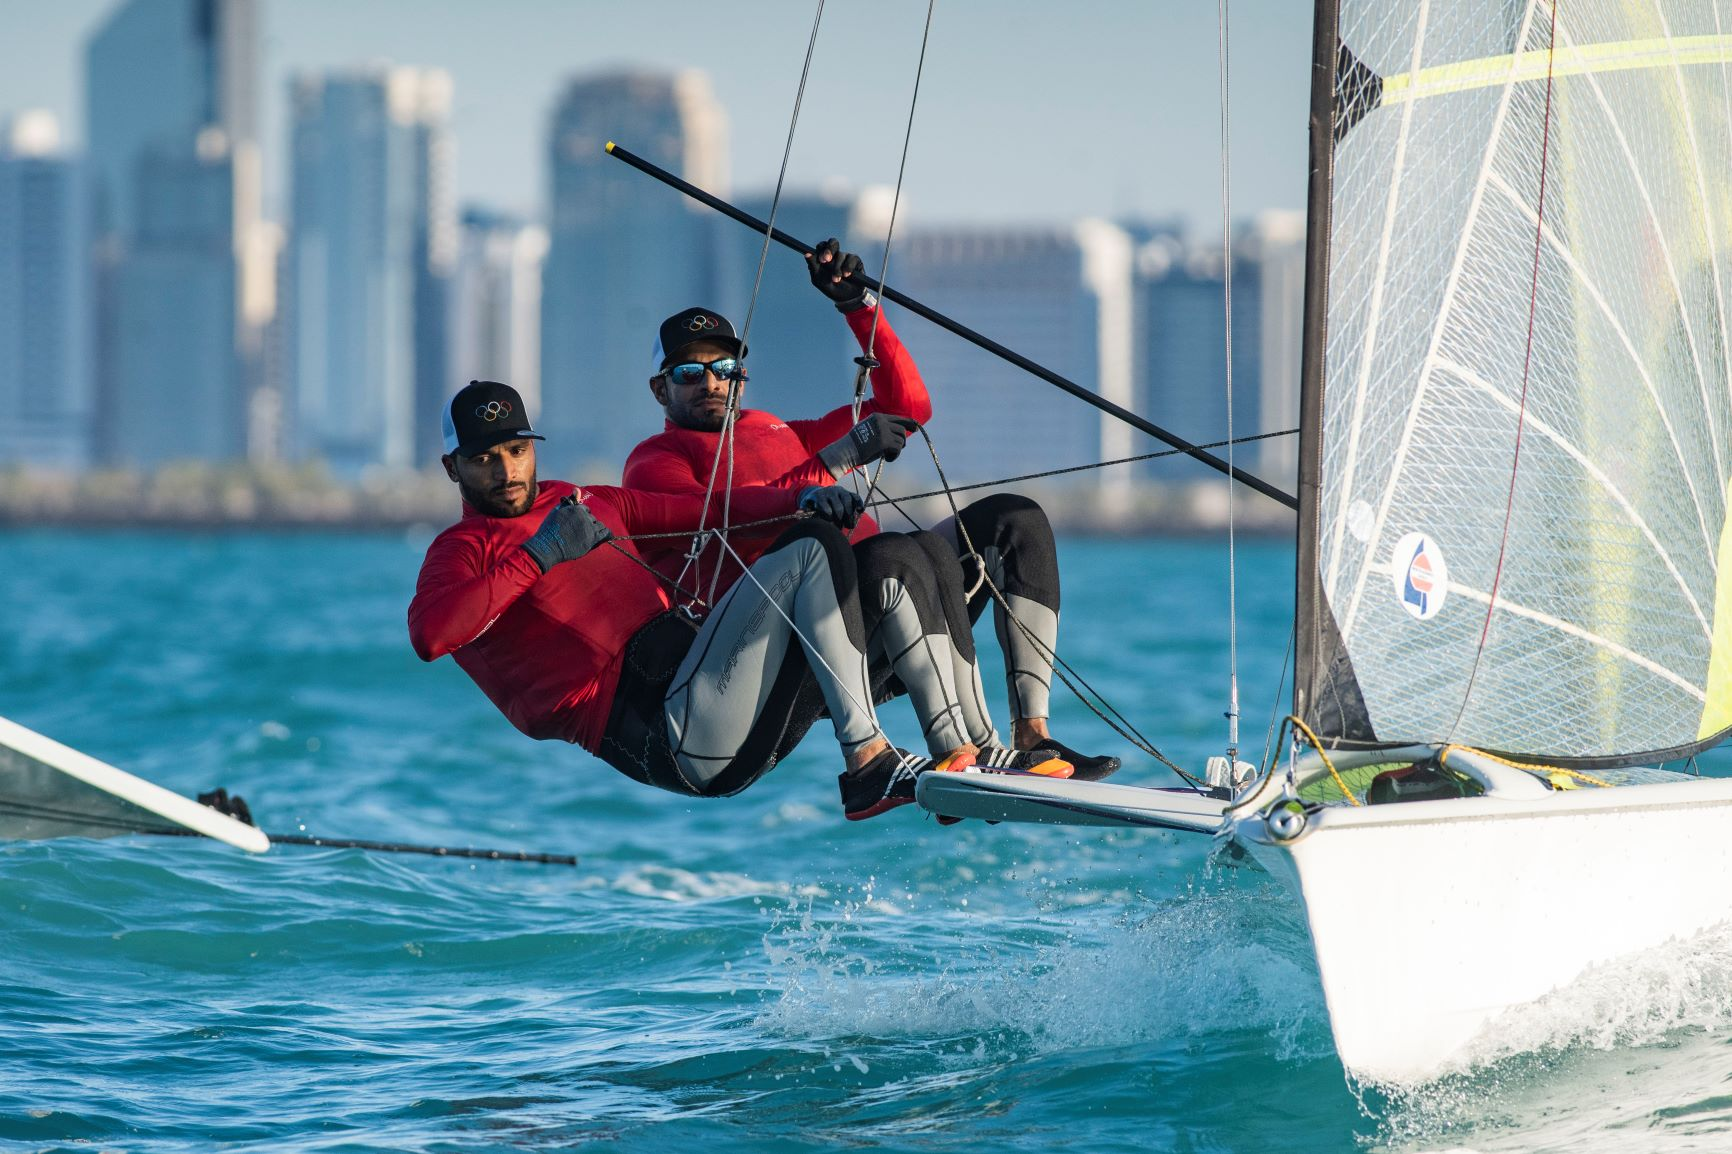 Oman Sail's 49er Olympic teams resume training in preparation for Tokyo Olympics qualifier event